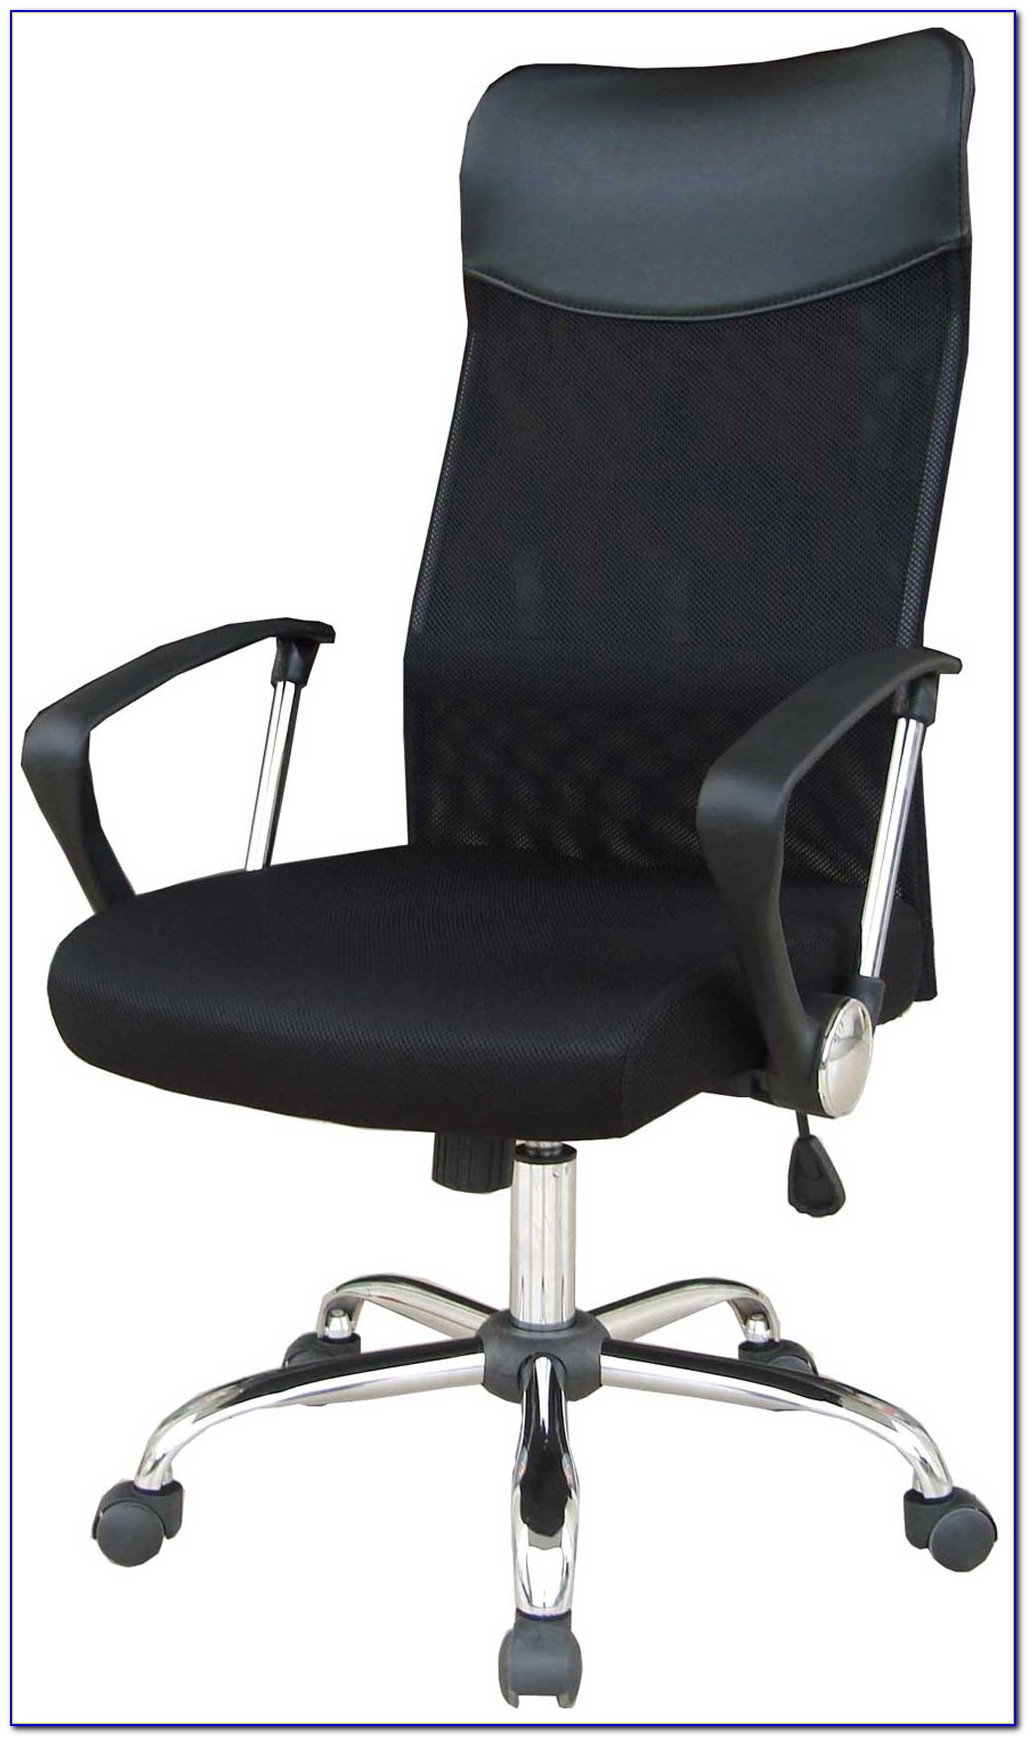 Best Office Chair For Back Pain Amazon